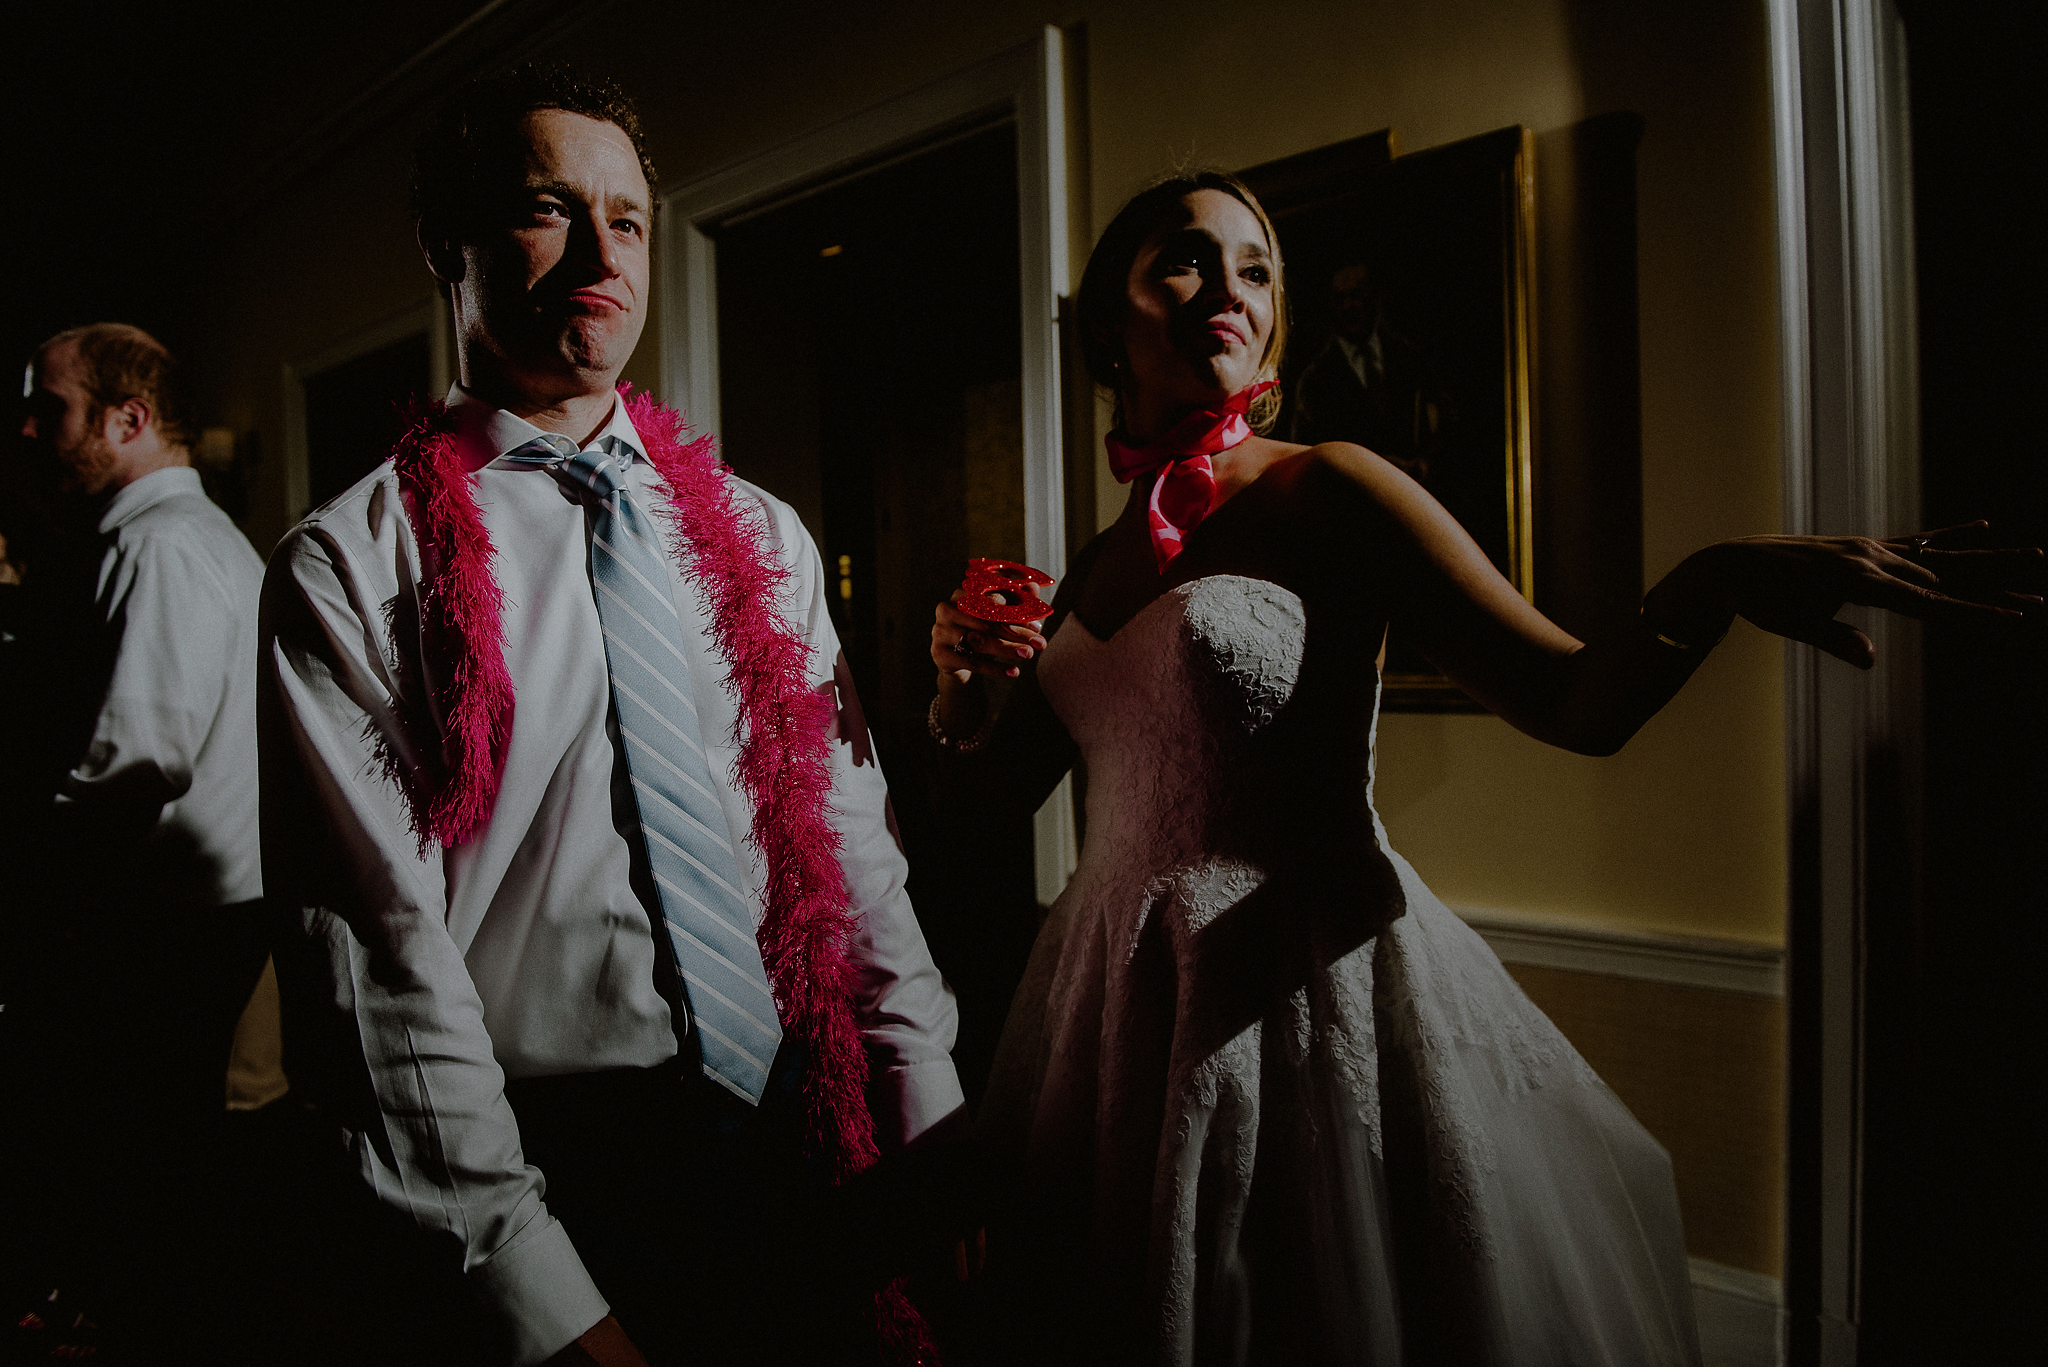 creative light wedding photos